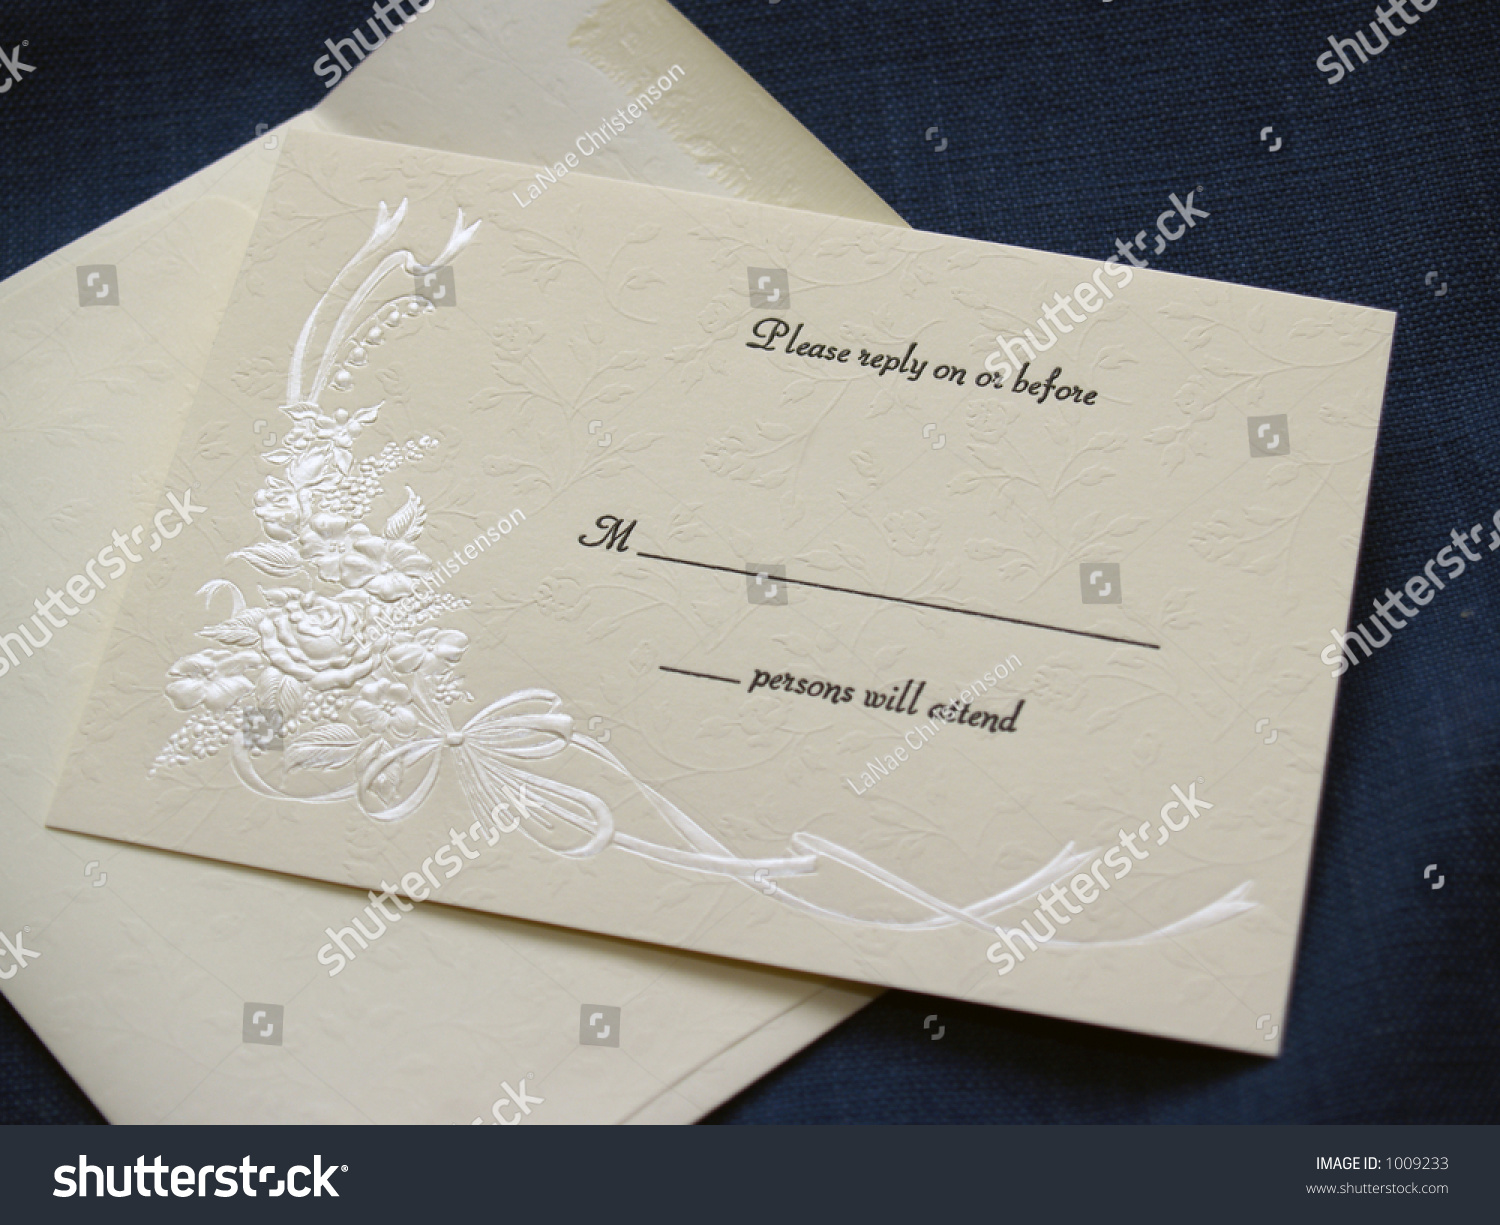 Wedding Invitation Reply Images Wedding And Party Invitation – Reply to Party Invitation